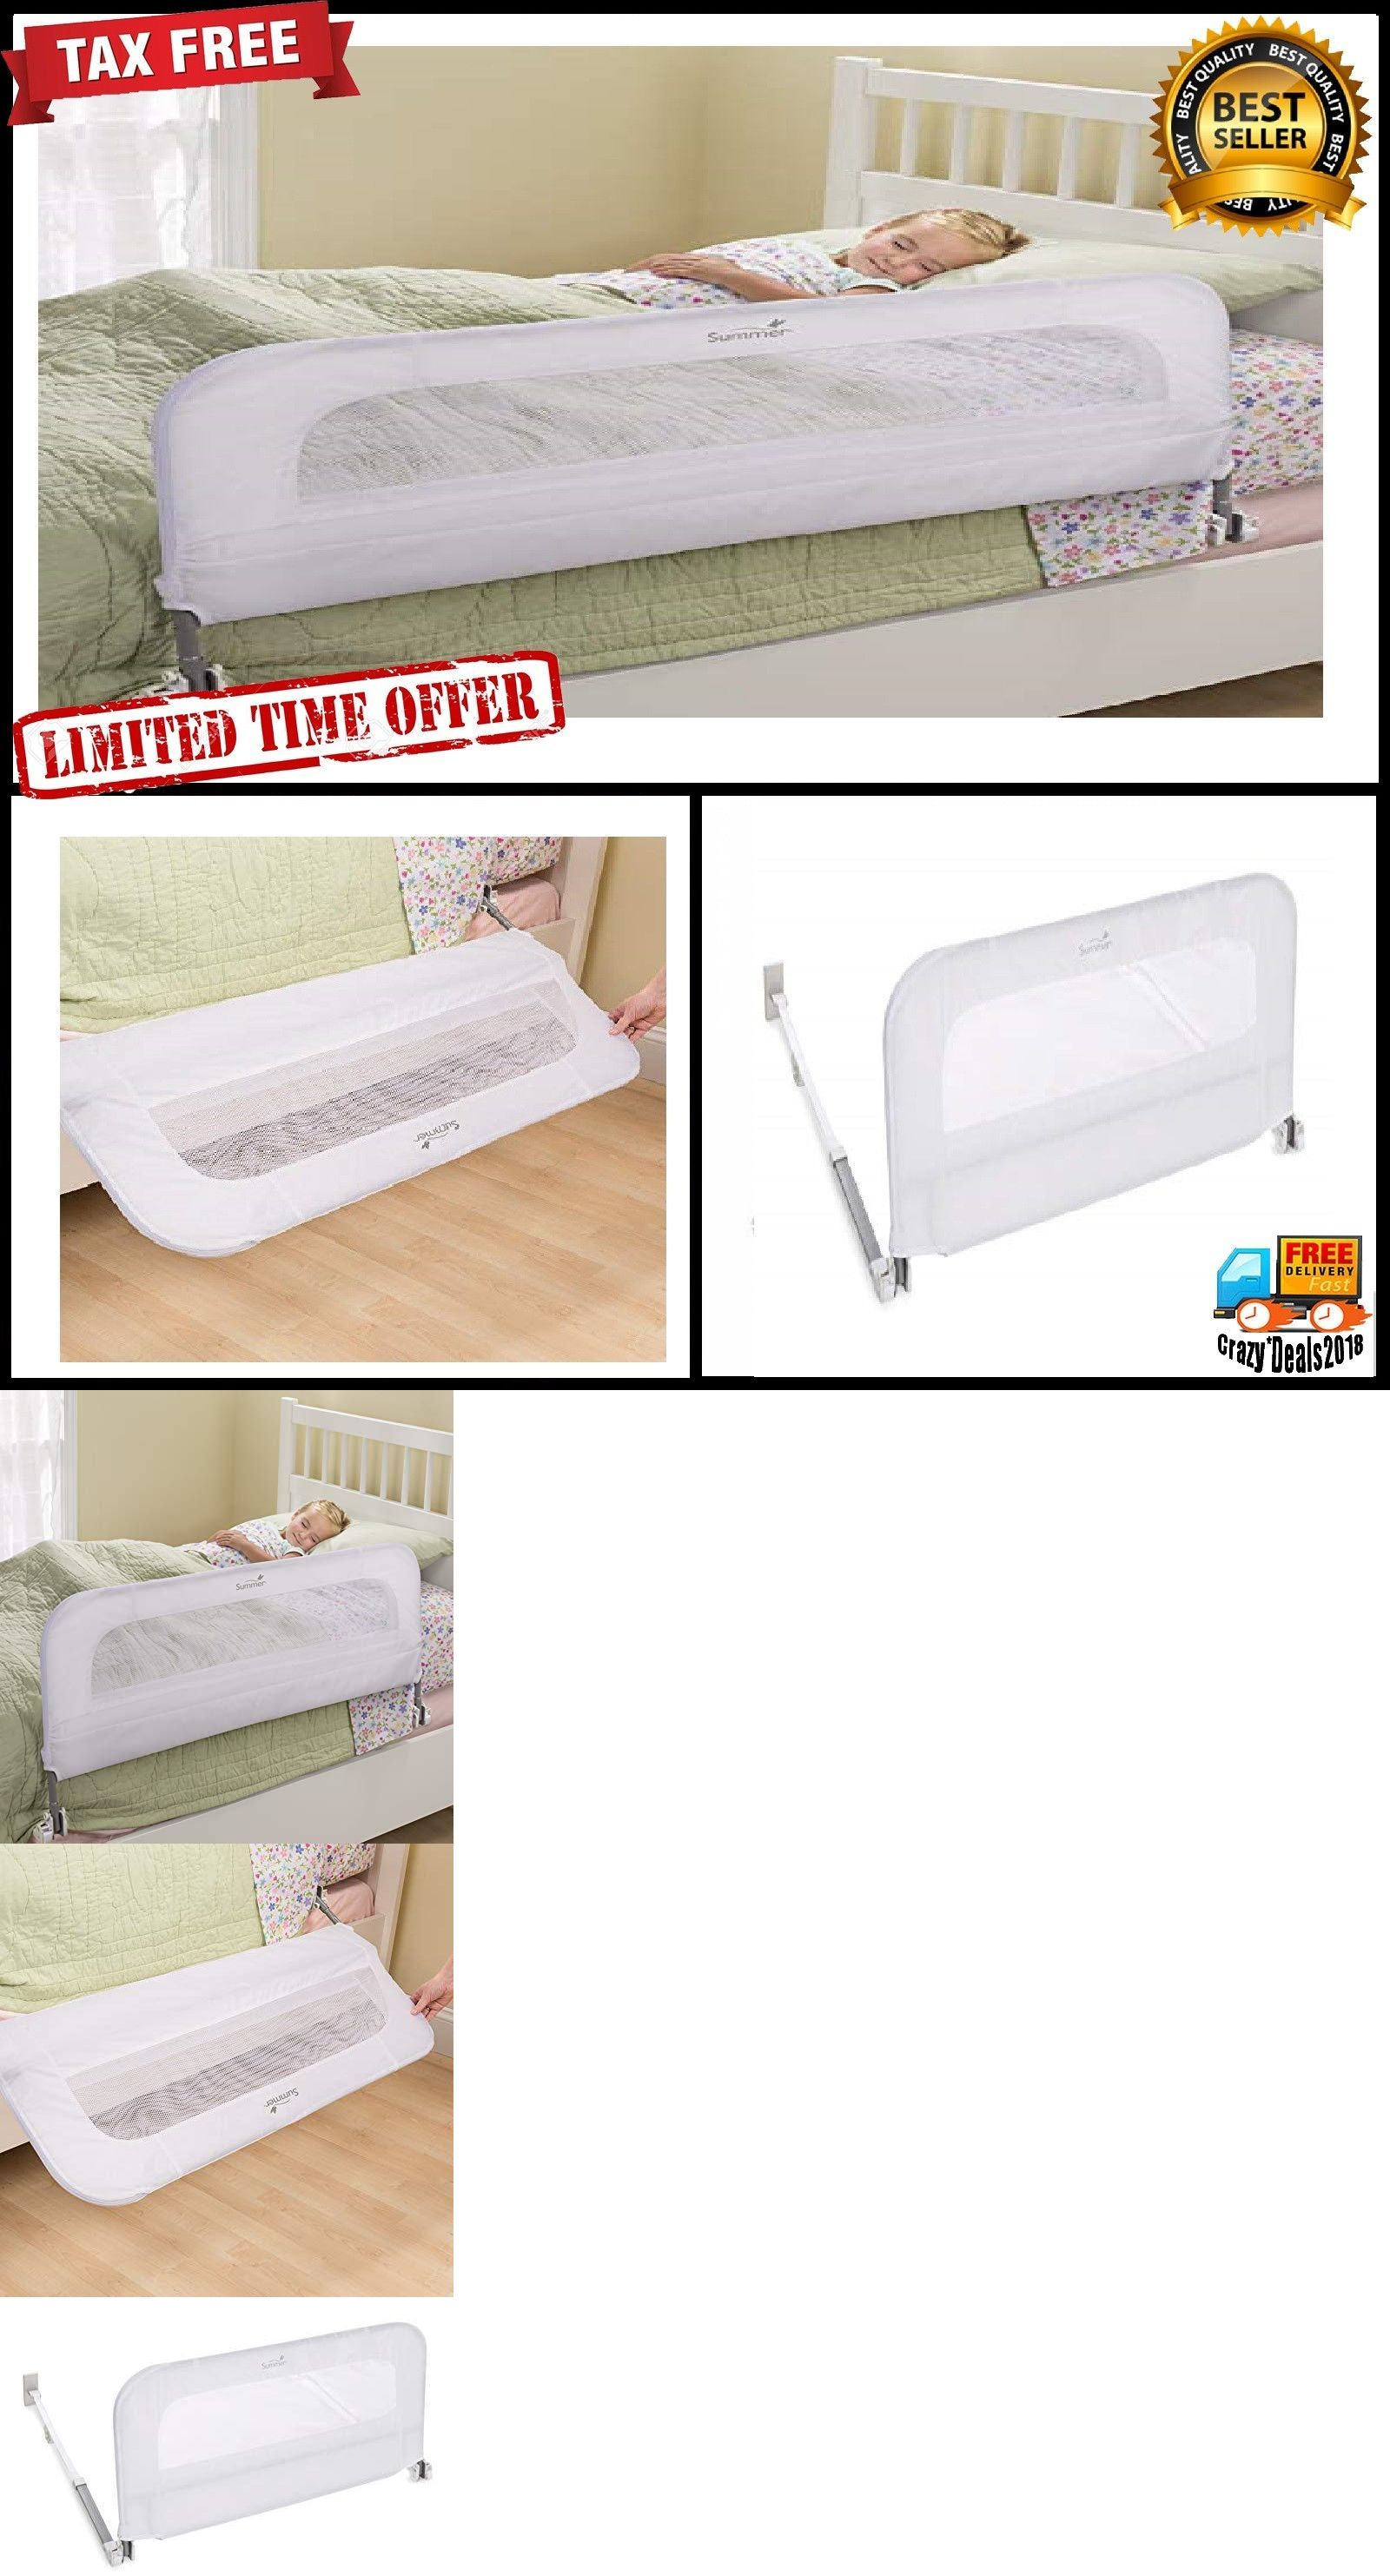 Bed Rails 162183 42.5 X 21 Single Fold Safety Bedrail Bed